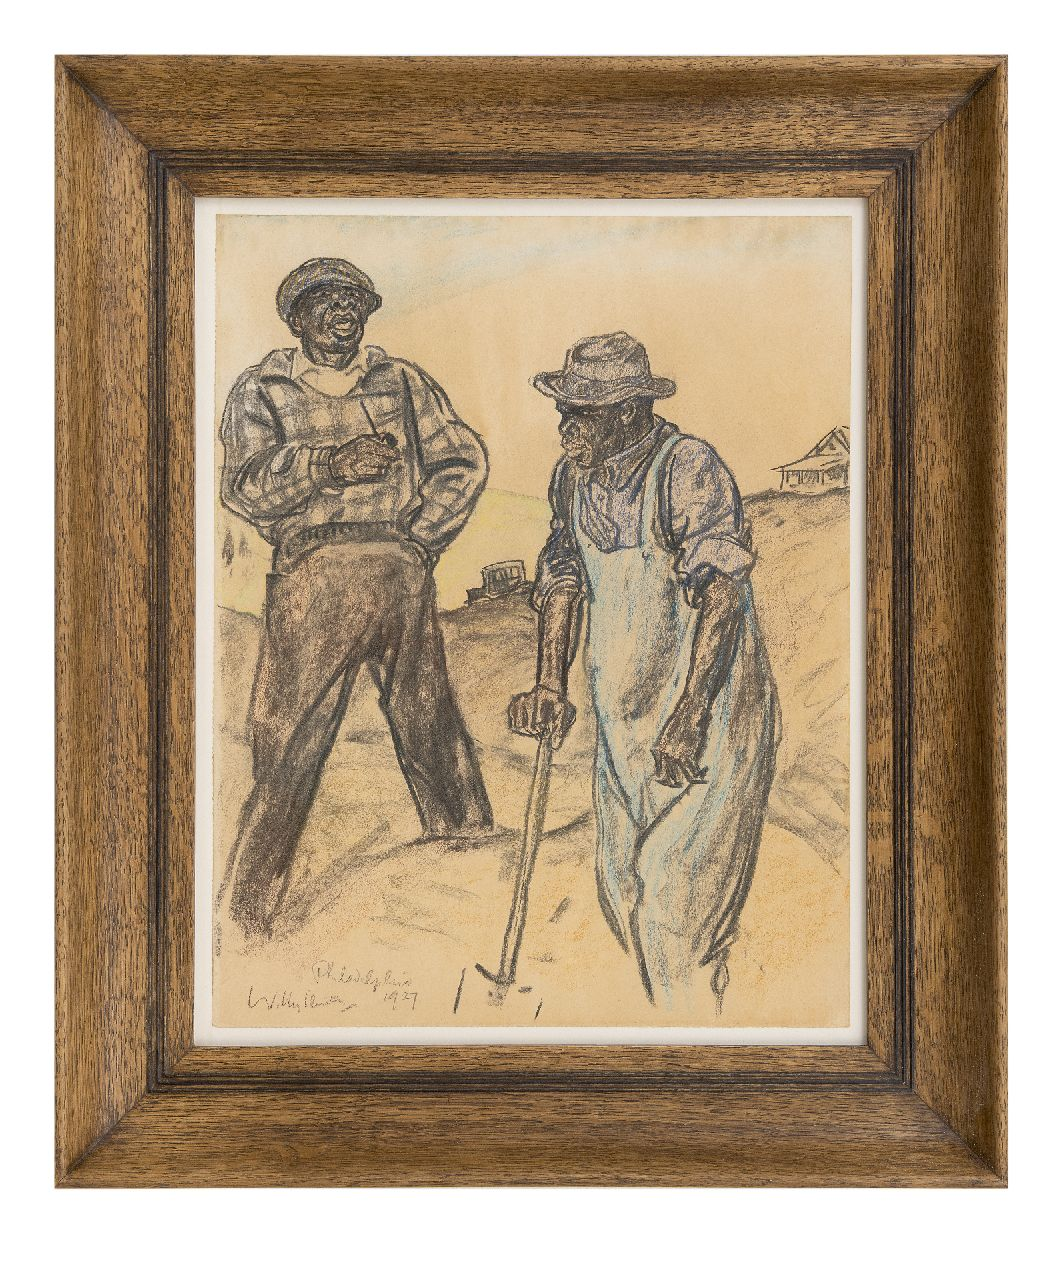 Sluiter J.W.  | Jan Willem 'Willy' Sluiter | Watercolours and drawings offered for sale | Diggers, Philadelpia, drawing on paper 46.6 x 36.3 cm, signed l.l. and dated 1927